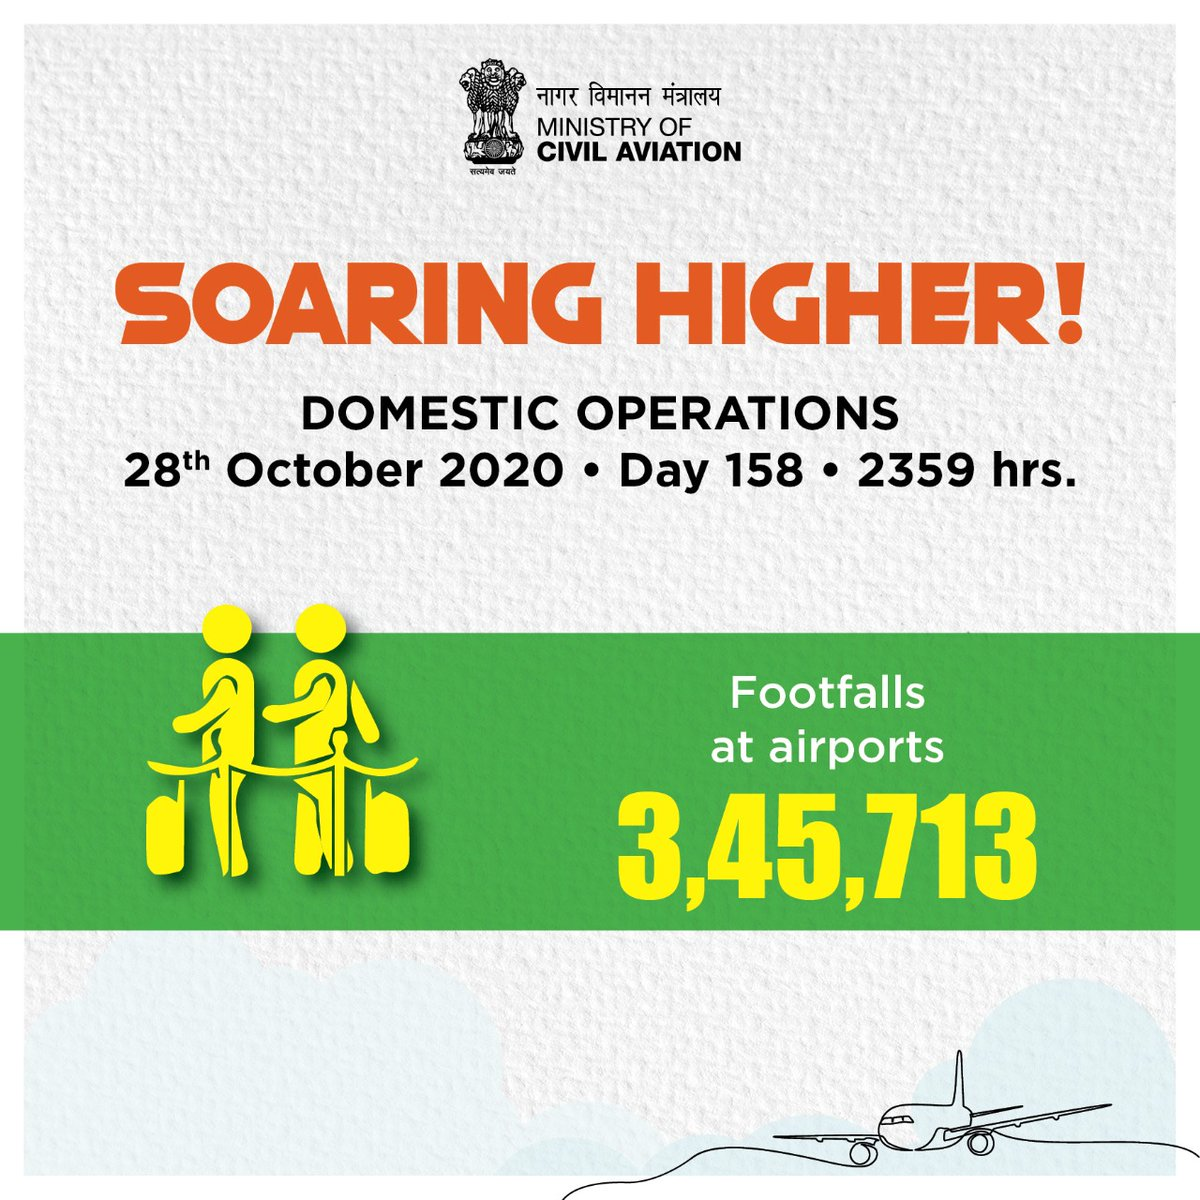 India soaring higher!  3,45,713 footfalls were recorded at airports across the country on 28th October. Aviation operations continue to soar! #SabUdenSabJuden #IndiaFliesHigh https://t.co/eGI2y5RhxJ